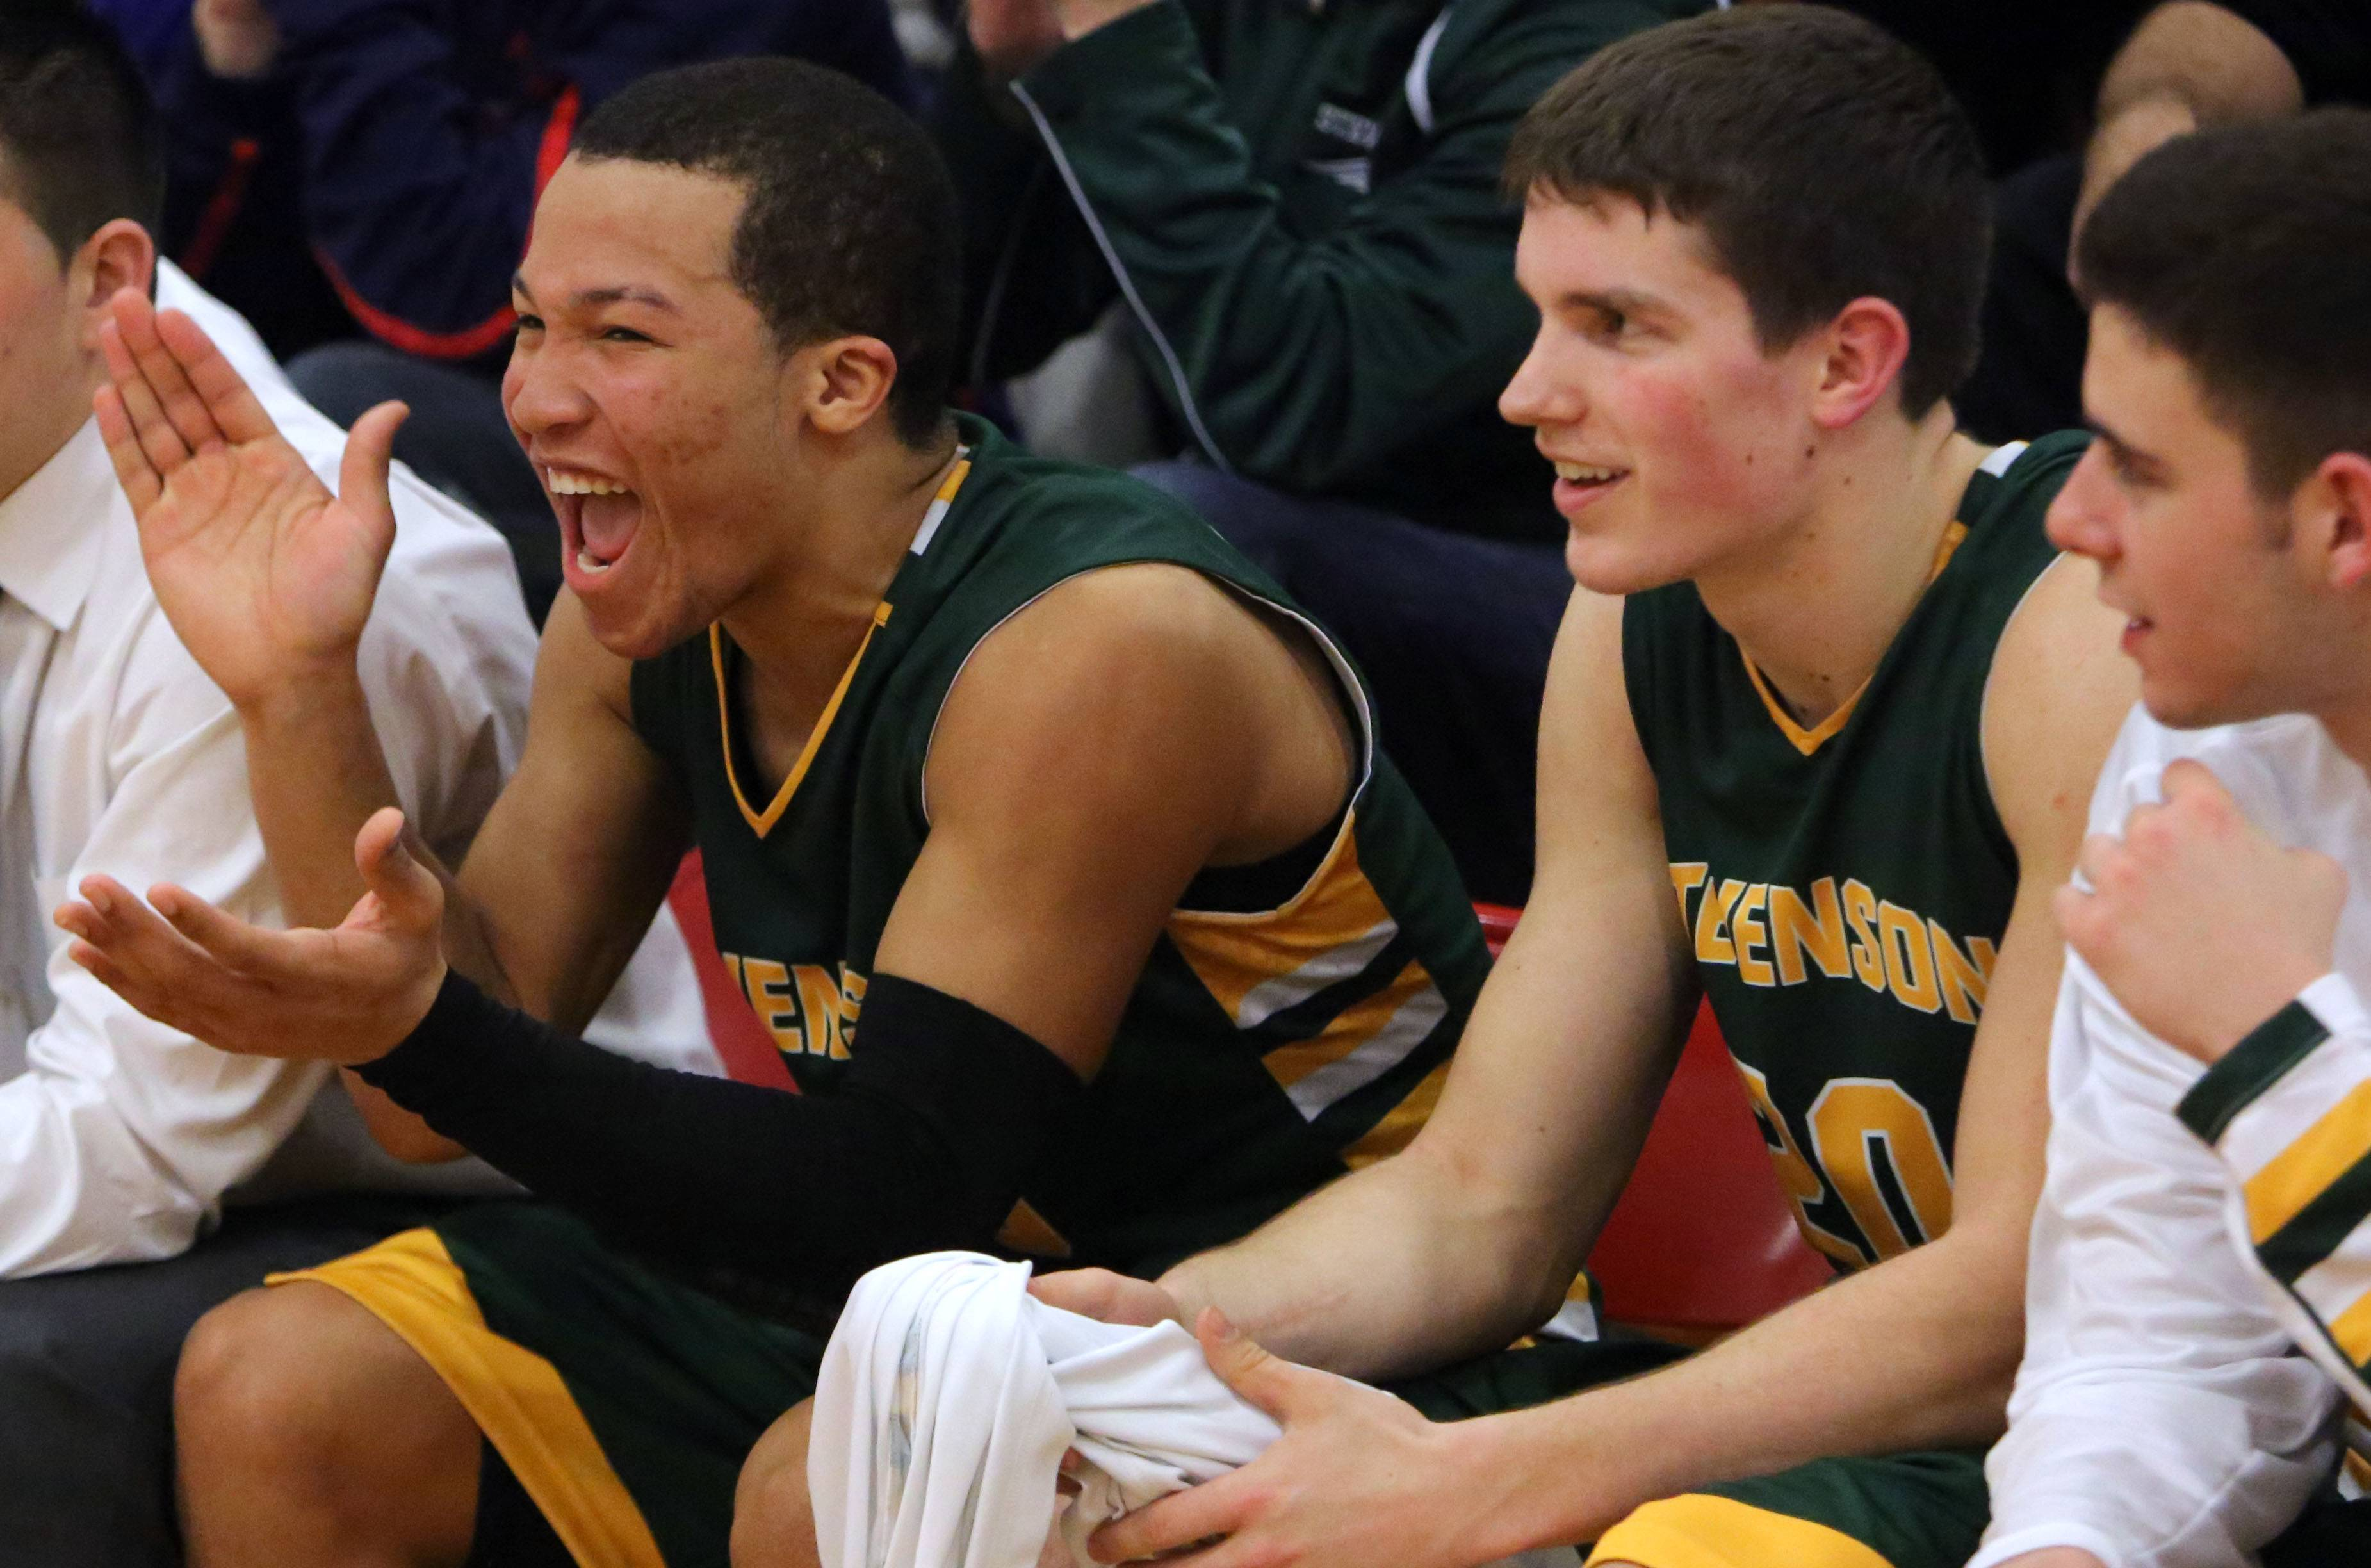 From left, Stevenson's Jalen Brunson, Matt Morrissey and Parker Nichols cheer from the bench during the Patriots' victory over North Chicago in the North Suburban Conference championship game Wednesday night at North Chicago.